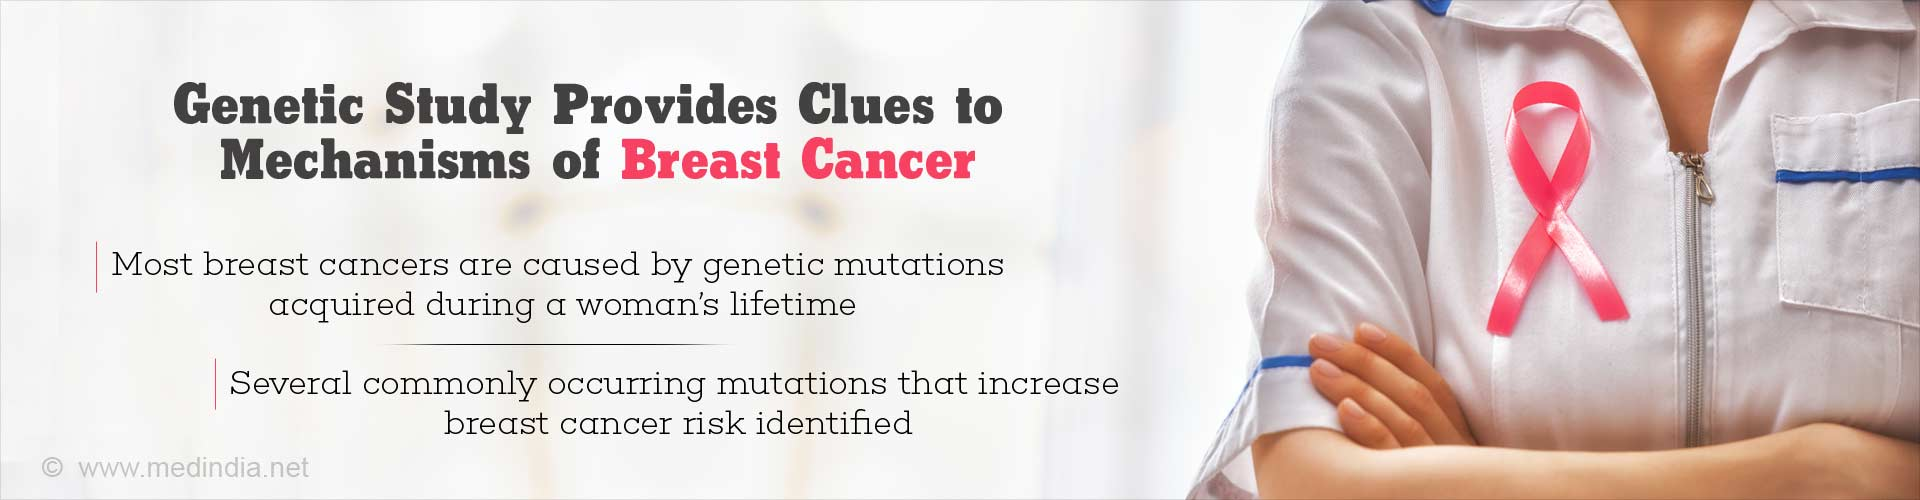 Several New Gene Variants That Increase the Risk of Breast Cancer Identified